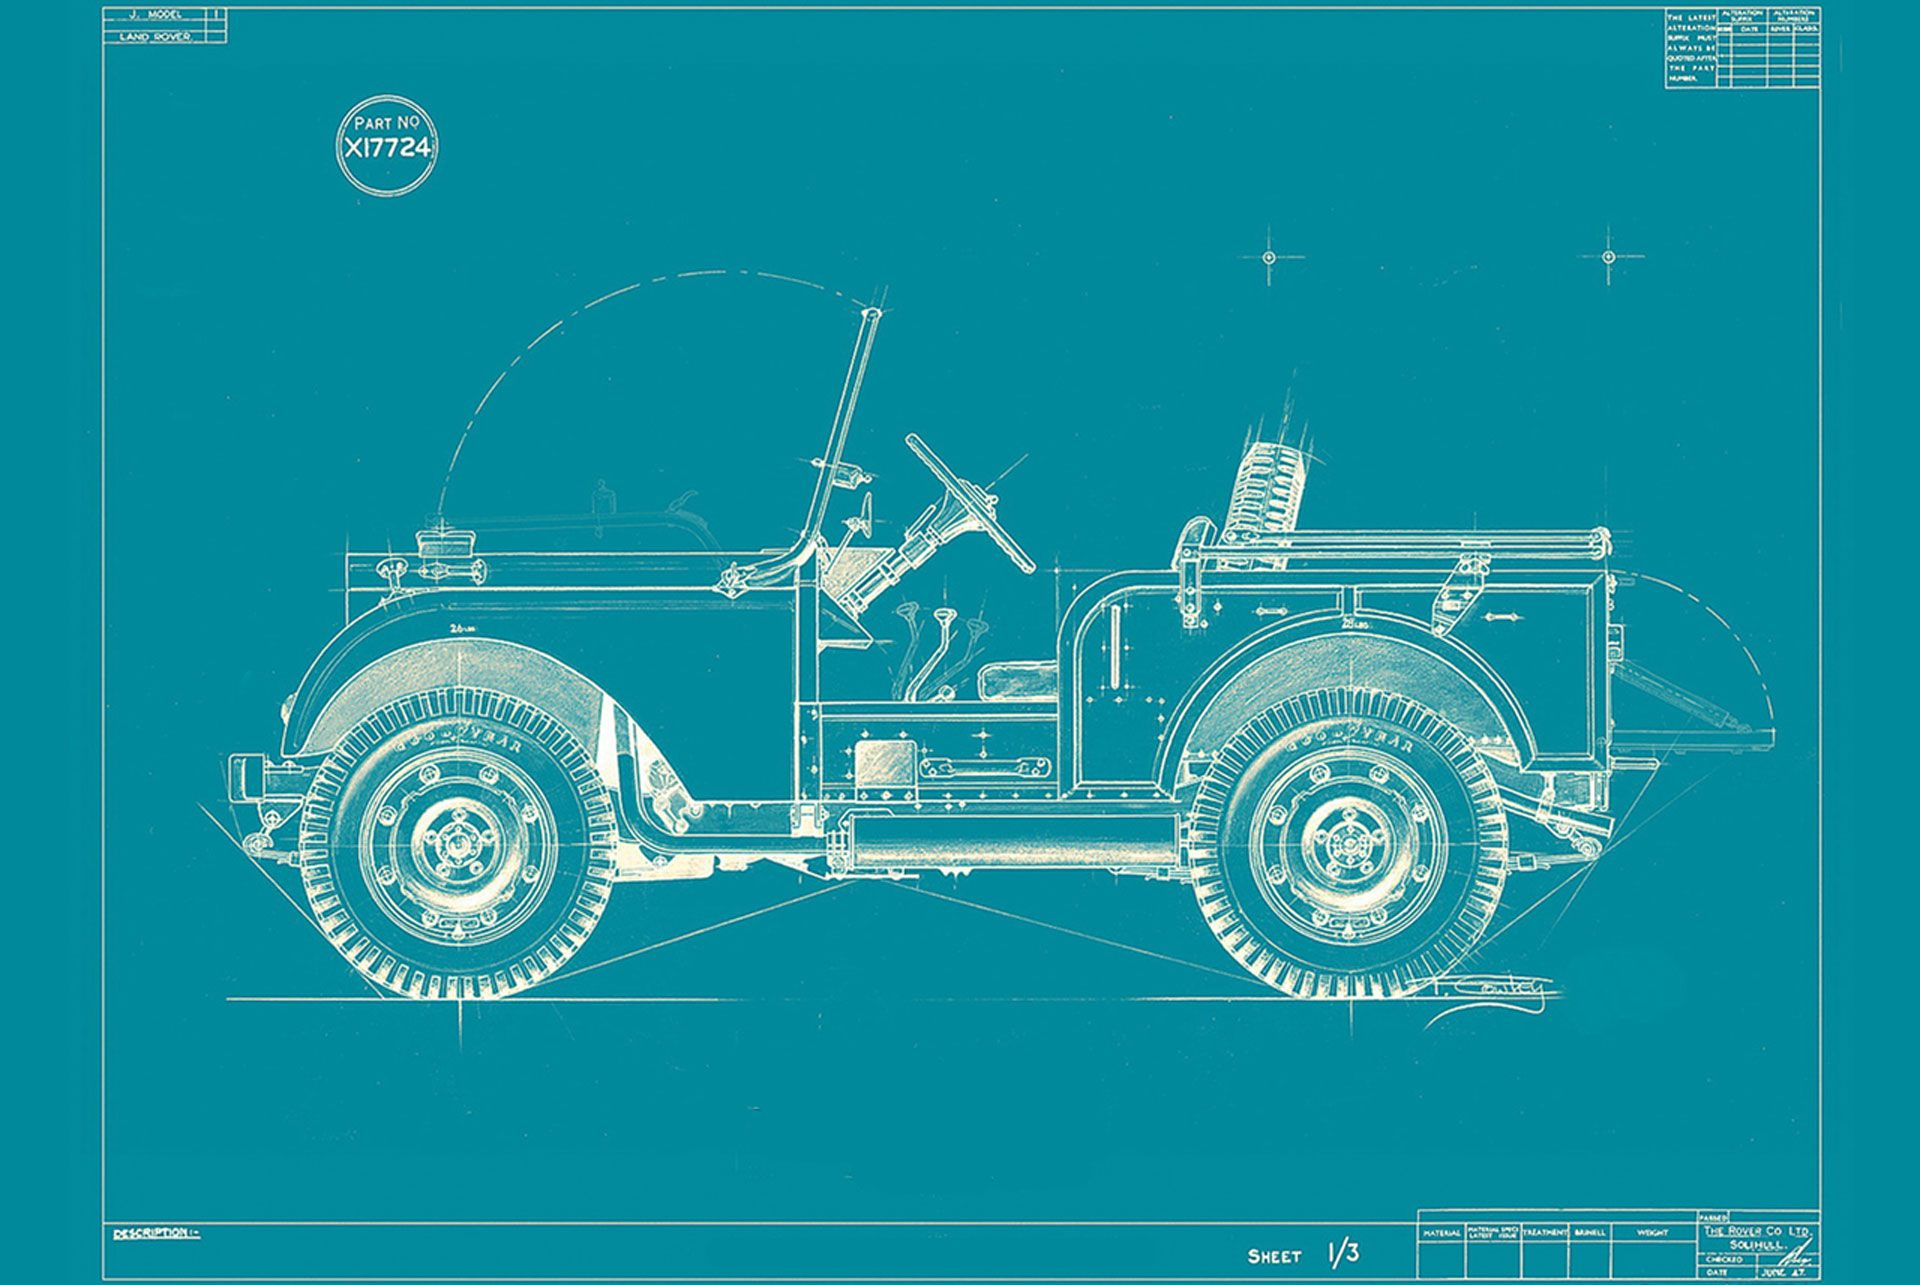 Willys jeep type vehicle blueprint blueprints pinterest jeeps willys jeep type vehicle blueprint malvernweather Image collections